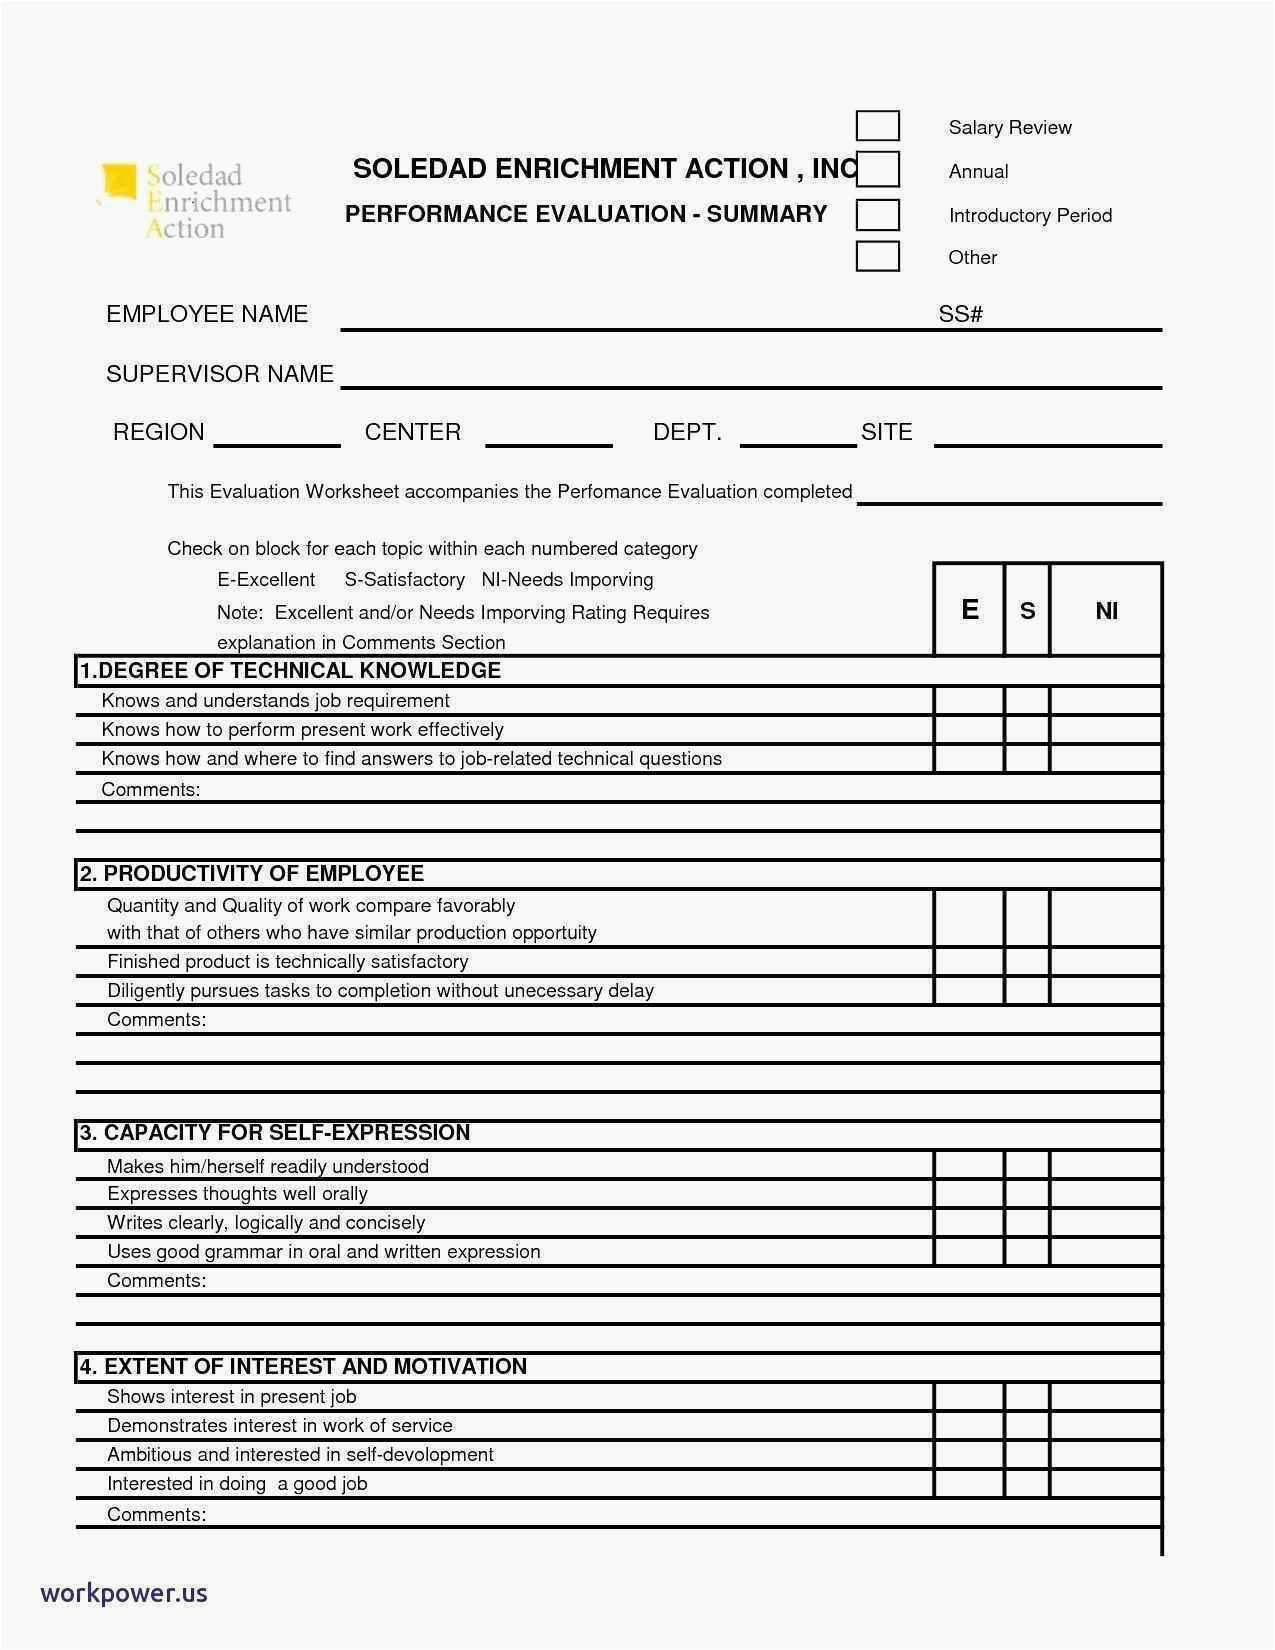 Performance Review Feedback Template Performance Review Feedback Template Performance Review Fee Performance Evaluation Performance Appraisal Evaluation Form